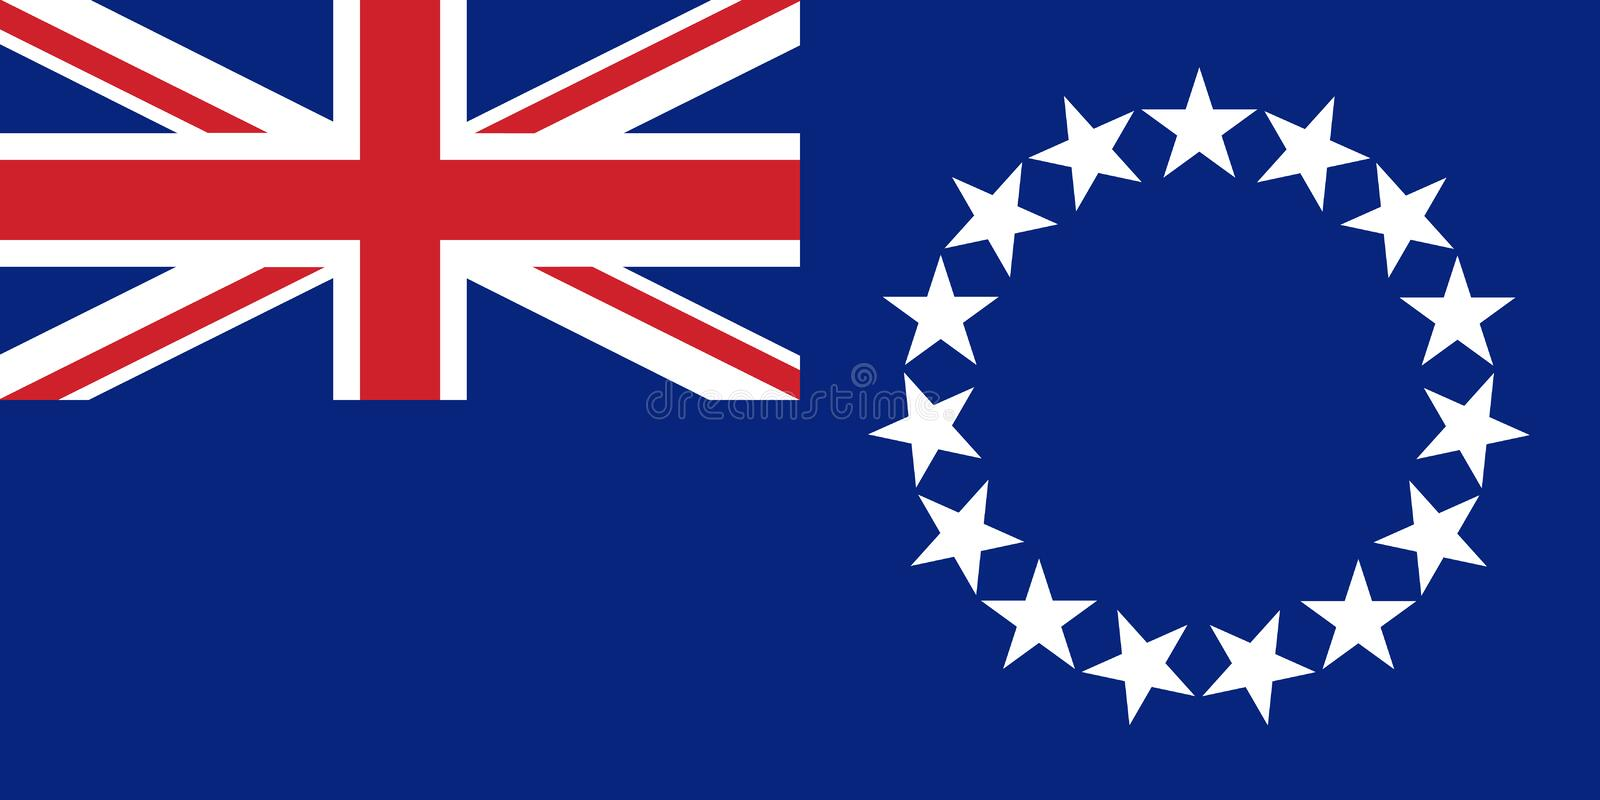 Flag Cook Islands in official rate, vector royalty free illustration